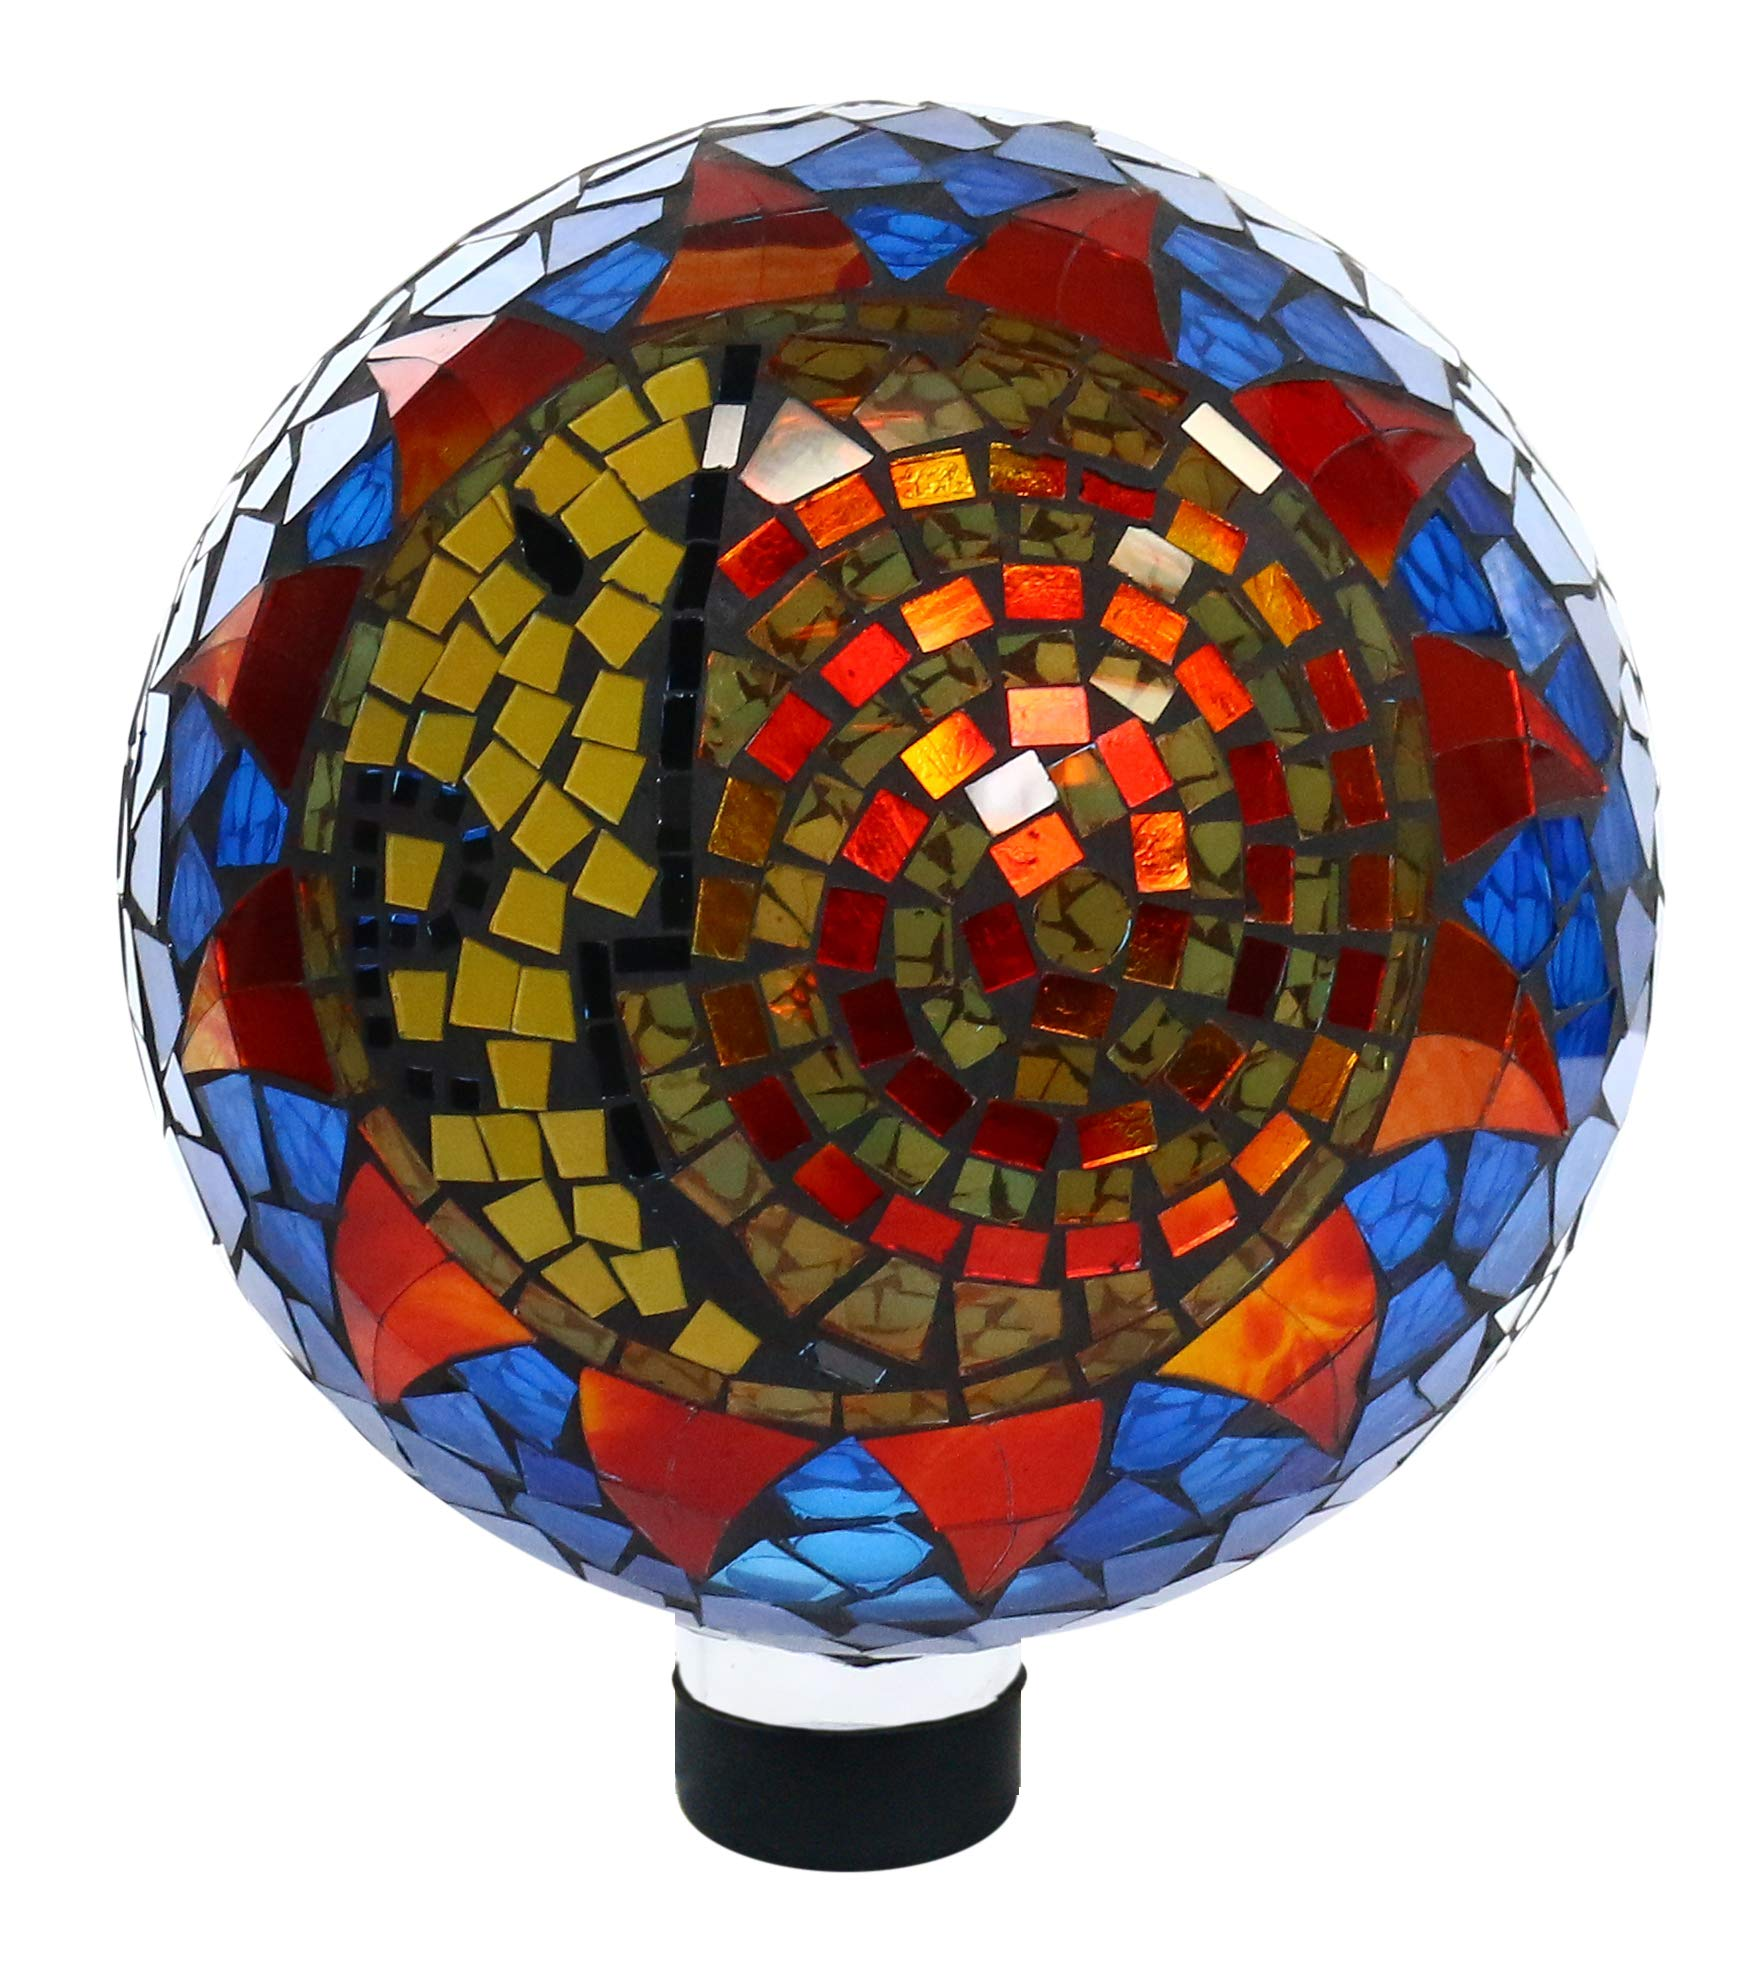 Alpine Corporation HGY120 Mosaic Sun and Moon Gazing Globe, 12 Inch Tall, Multi-Color